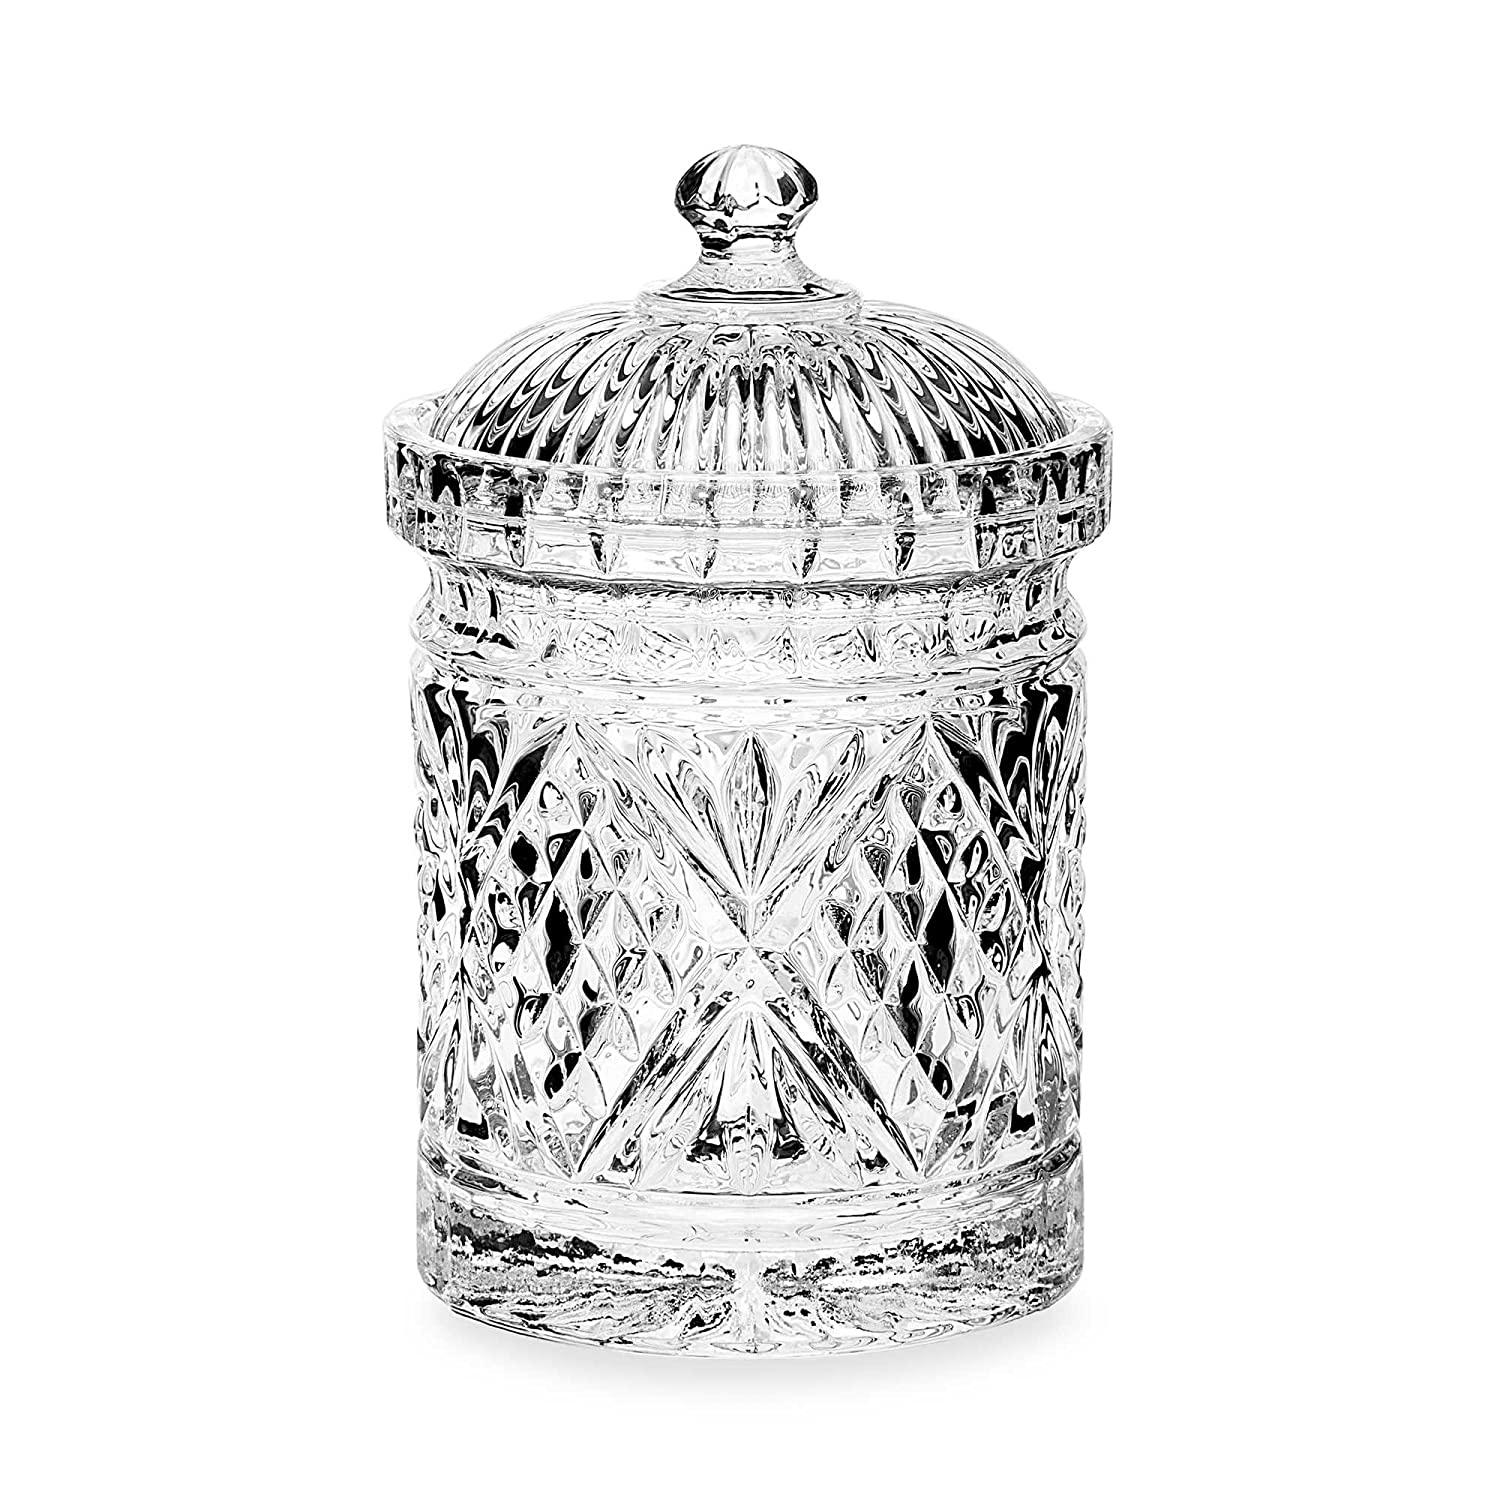 Le'raze Elegant Crystal Diamond-faceted Candy Dish With Crystal With Lid, Quality Decorative Biscuit Jar Le'raze